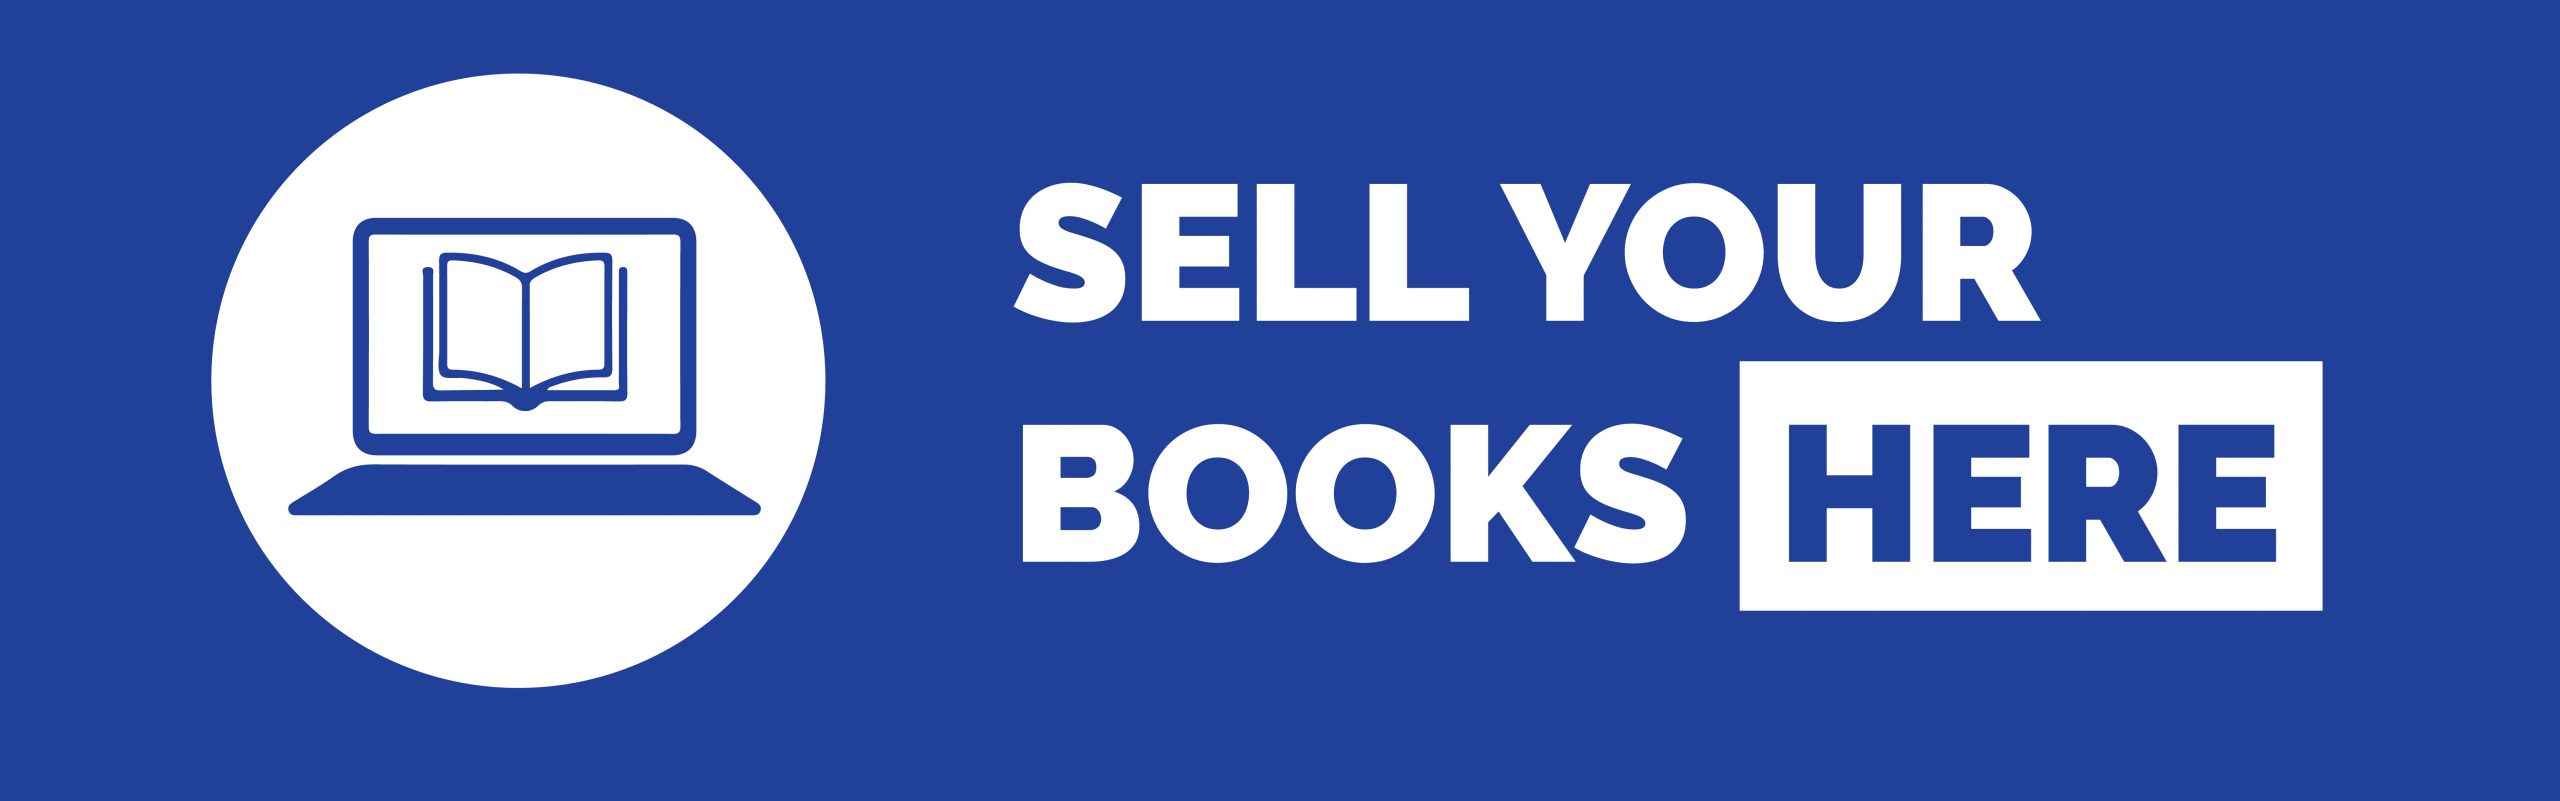 Sell Your Books Here!